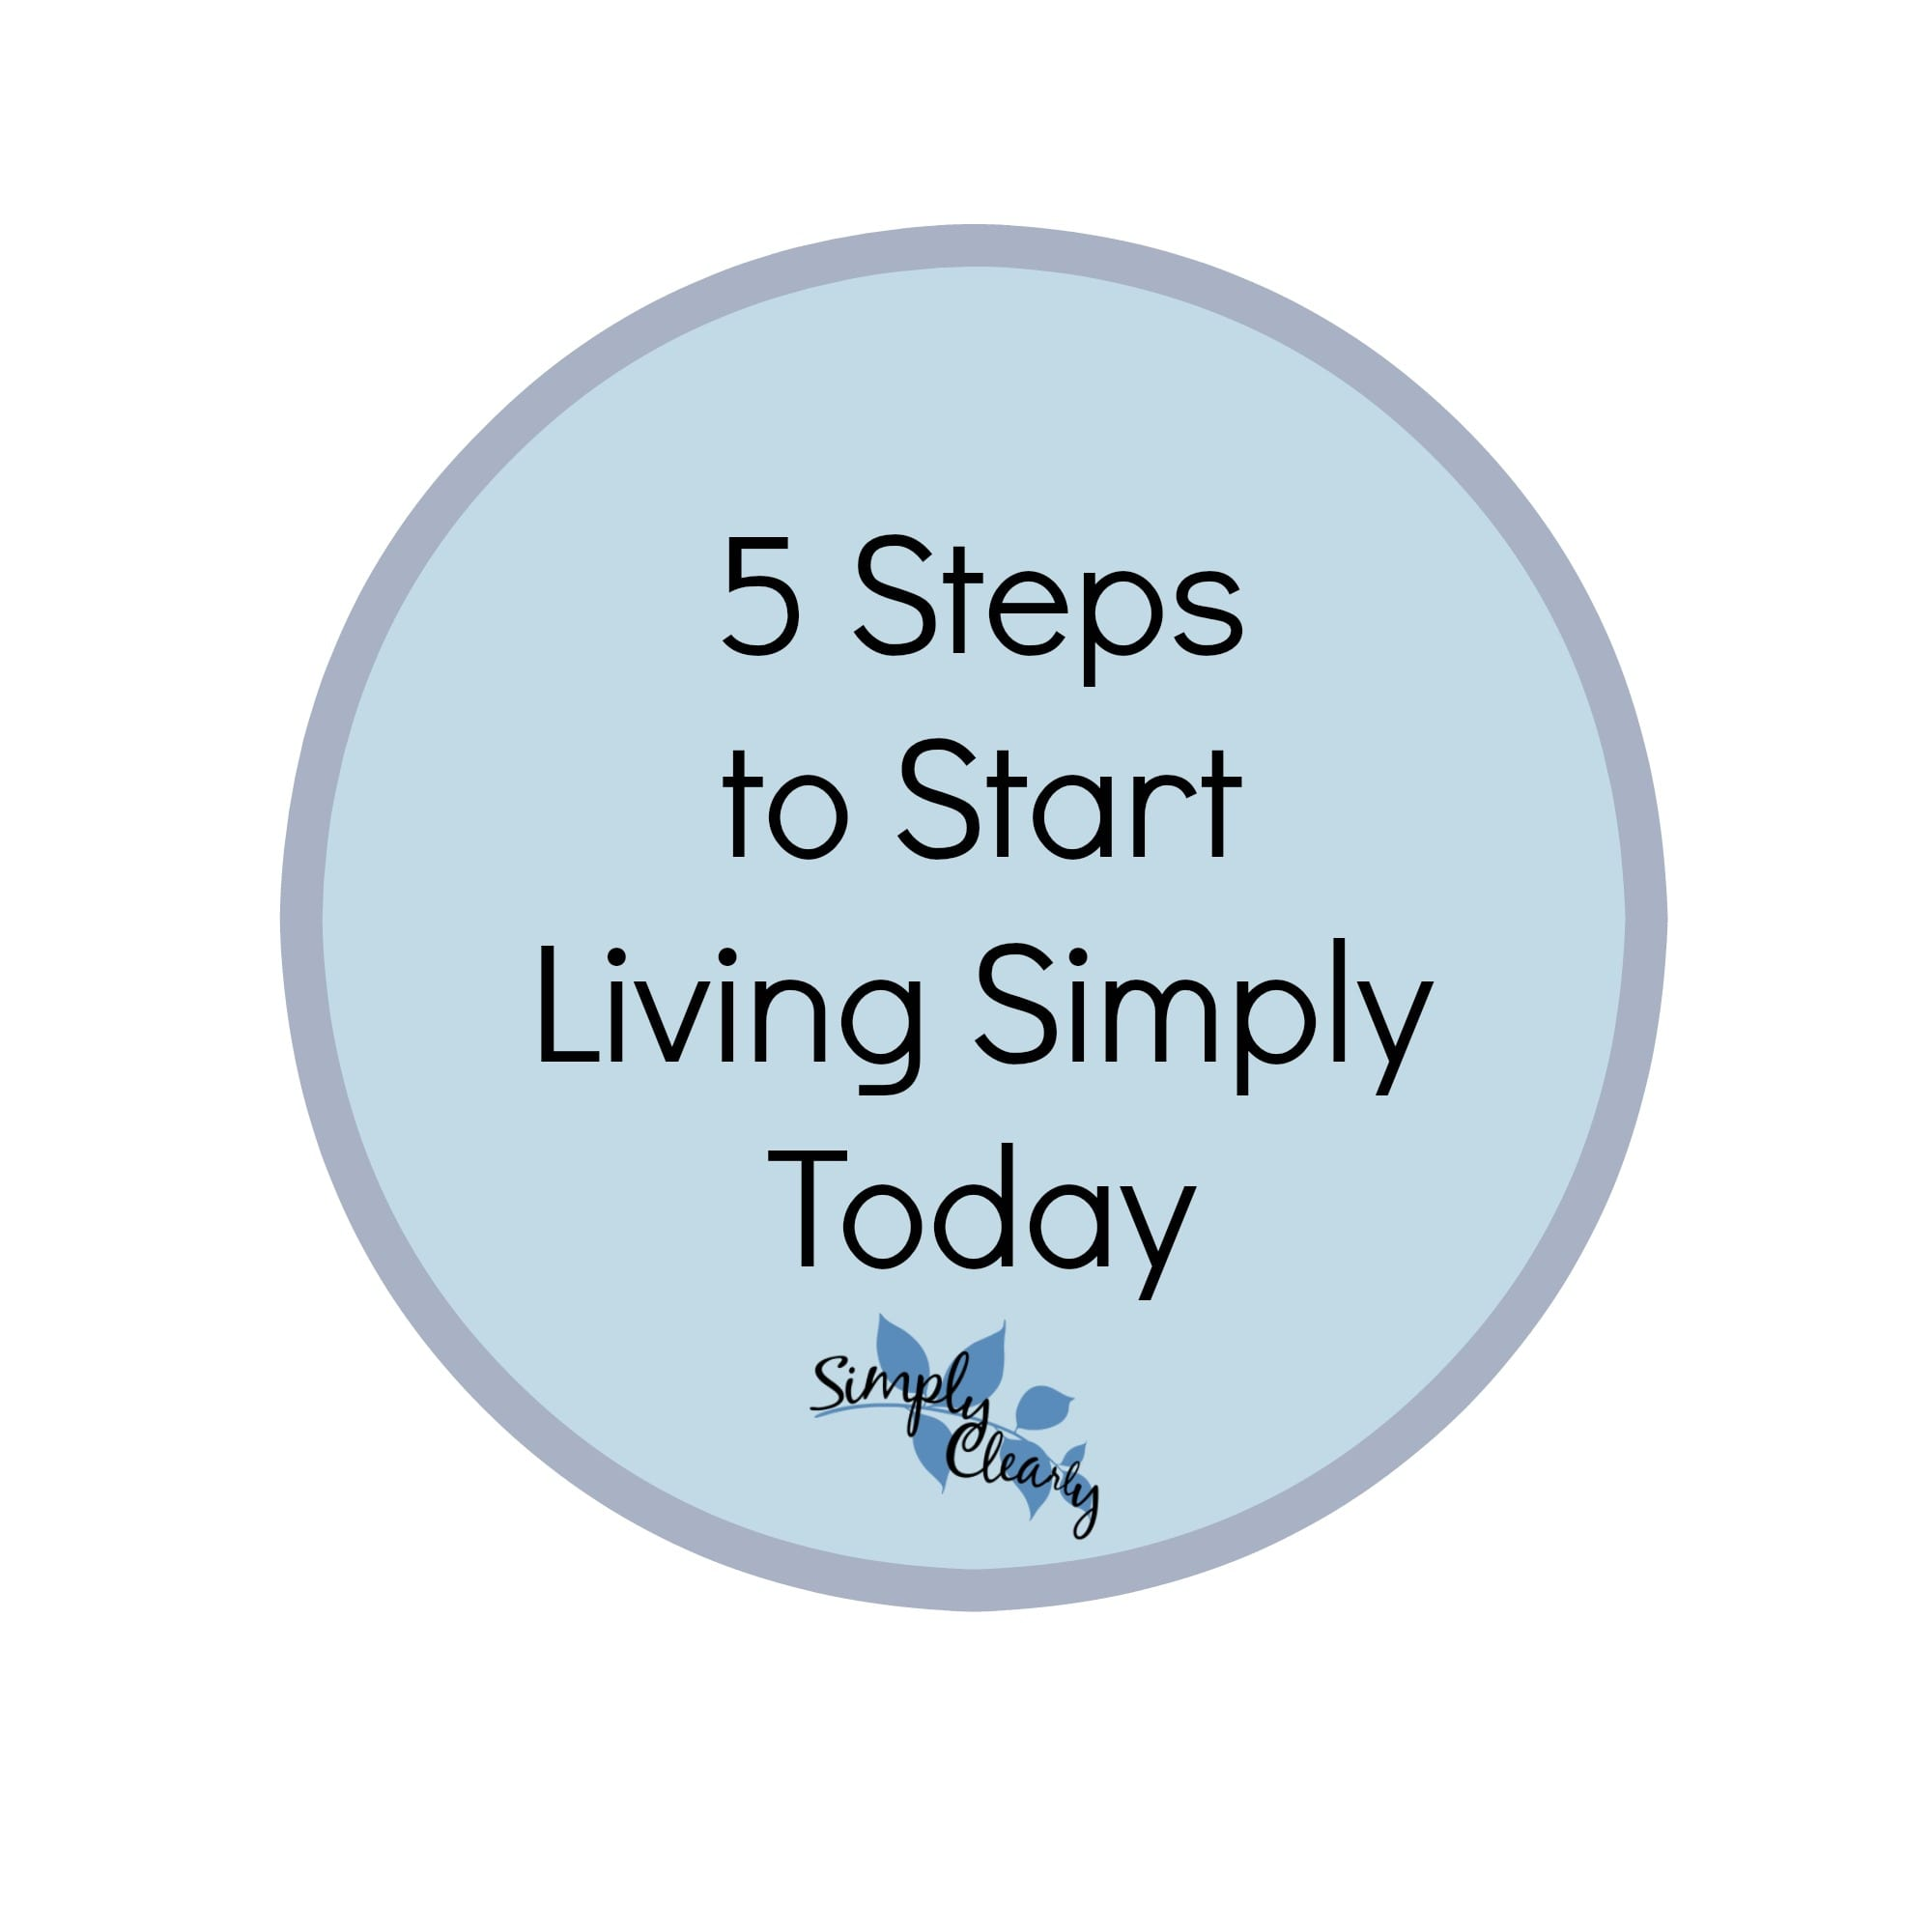 5 Steps to Start Living Simply Today